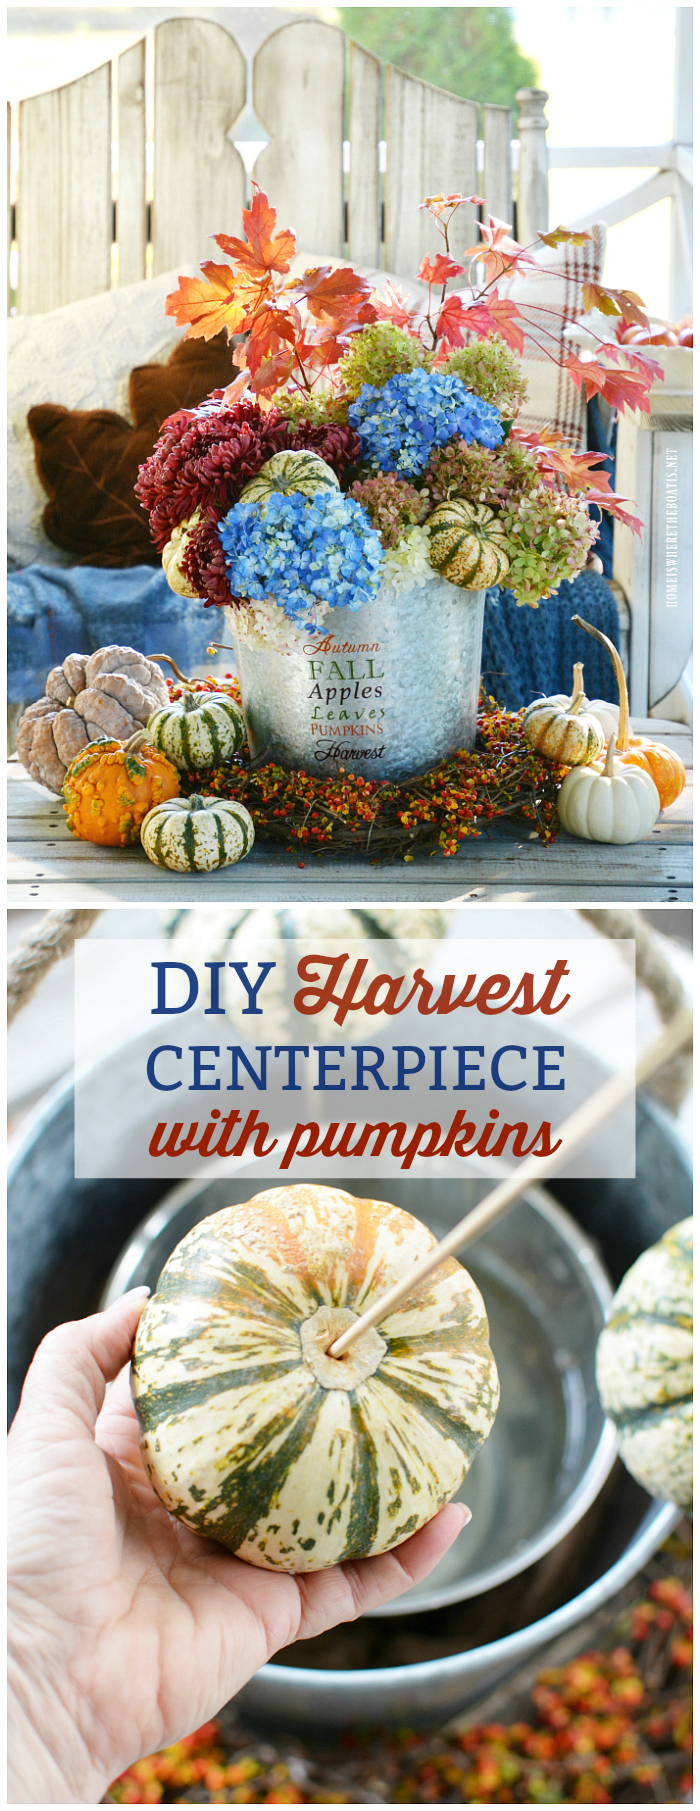 DIY Autumn Harvest Centerpiece in galvanized bucket with hydrangeas and tiger striped pumpkins, framed with a bittersweet vine wreath | ©homeiswheretheboatis.net #flowerarranging #fall #autumn #pumpkins #hydrangeas #DIY